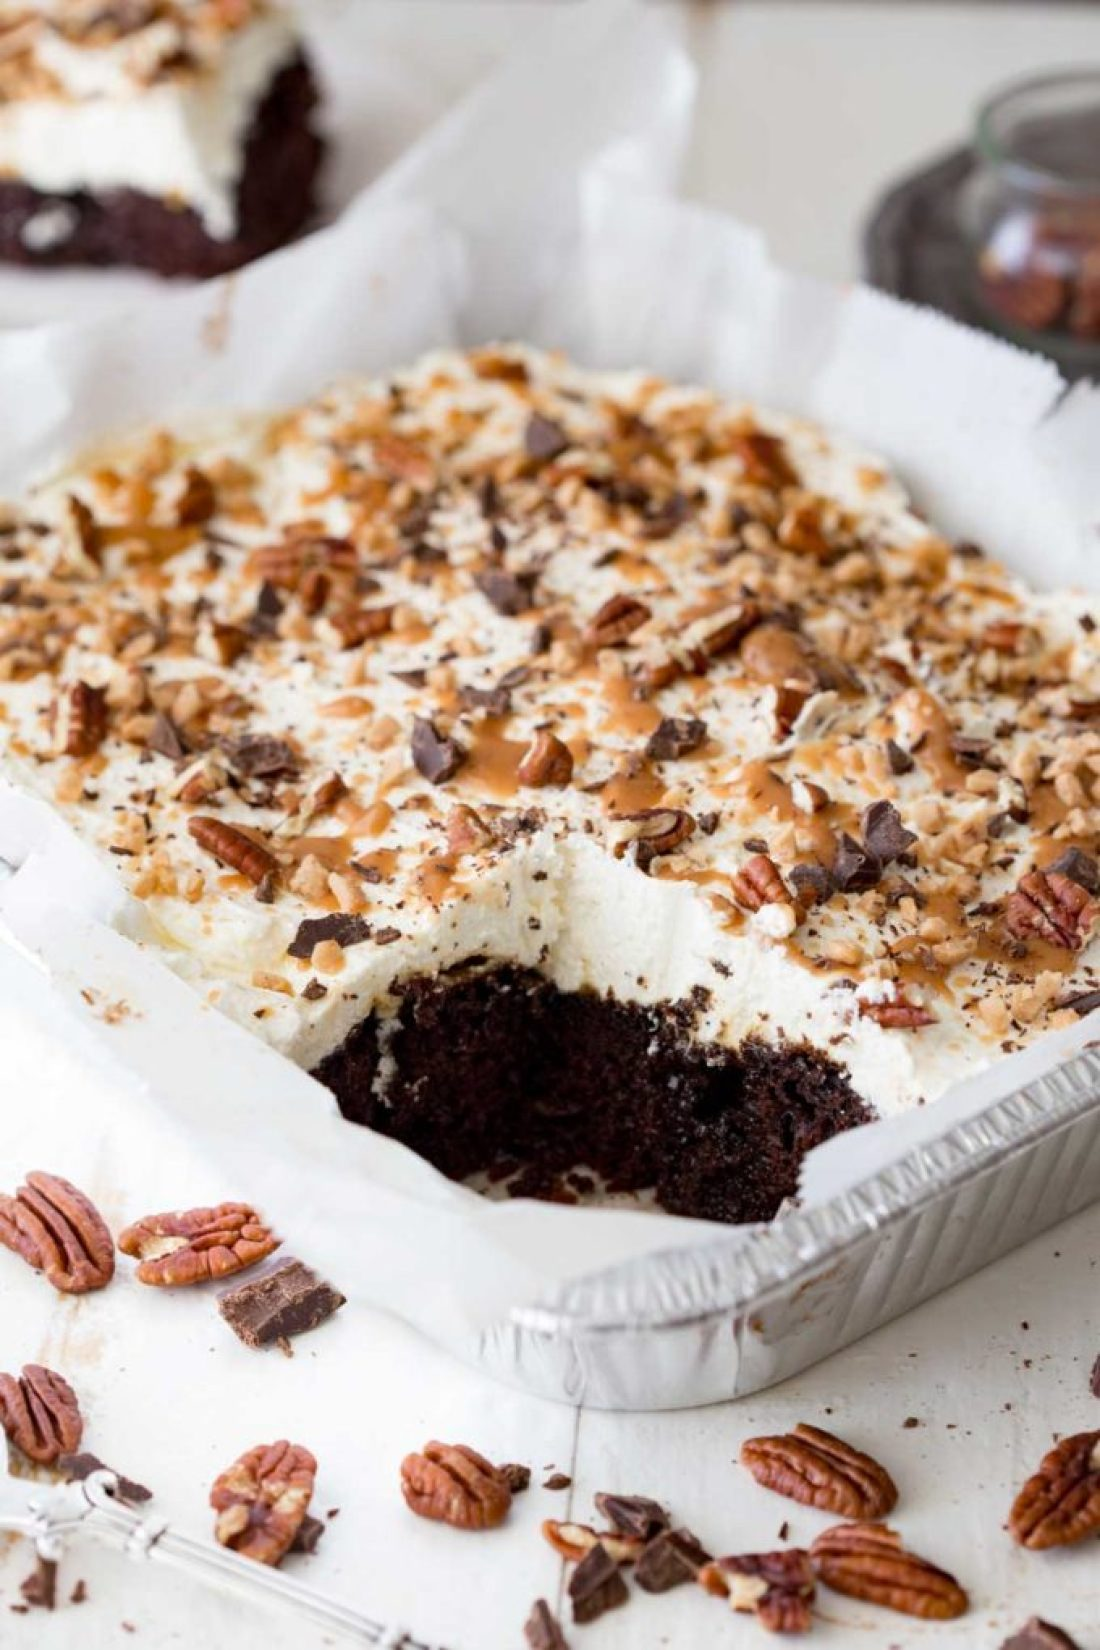 A rich decadent and unique turtle poke cake that is easy to make and topped with toffee as well as caramel, chocolate, and pecans